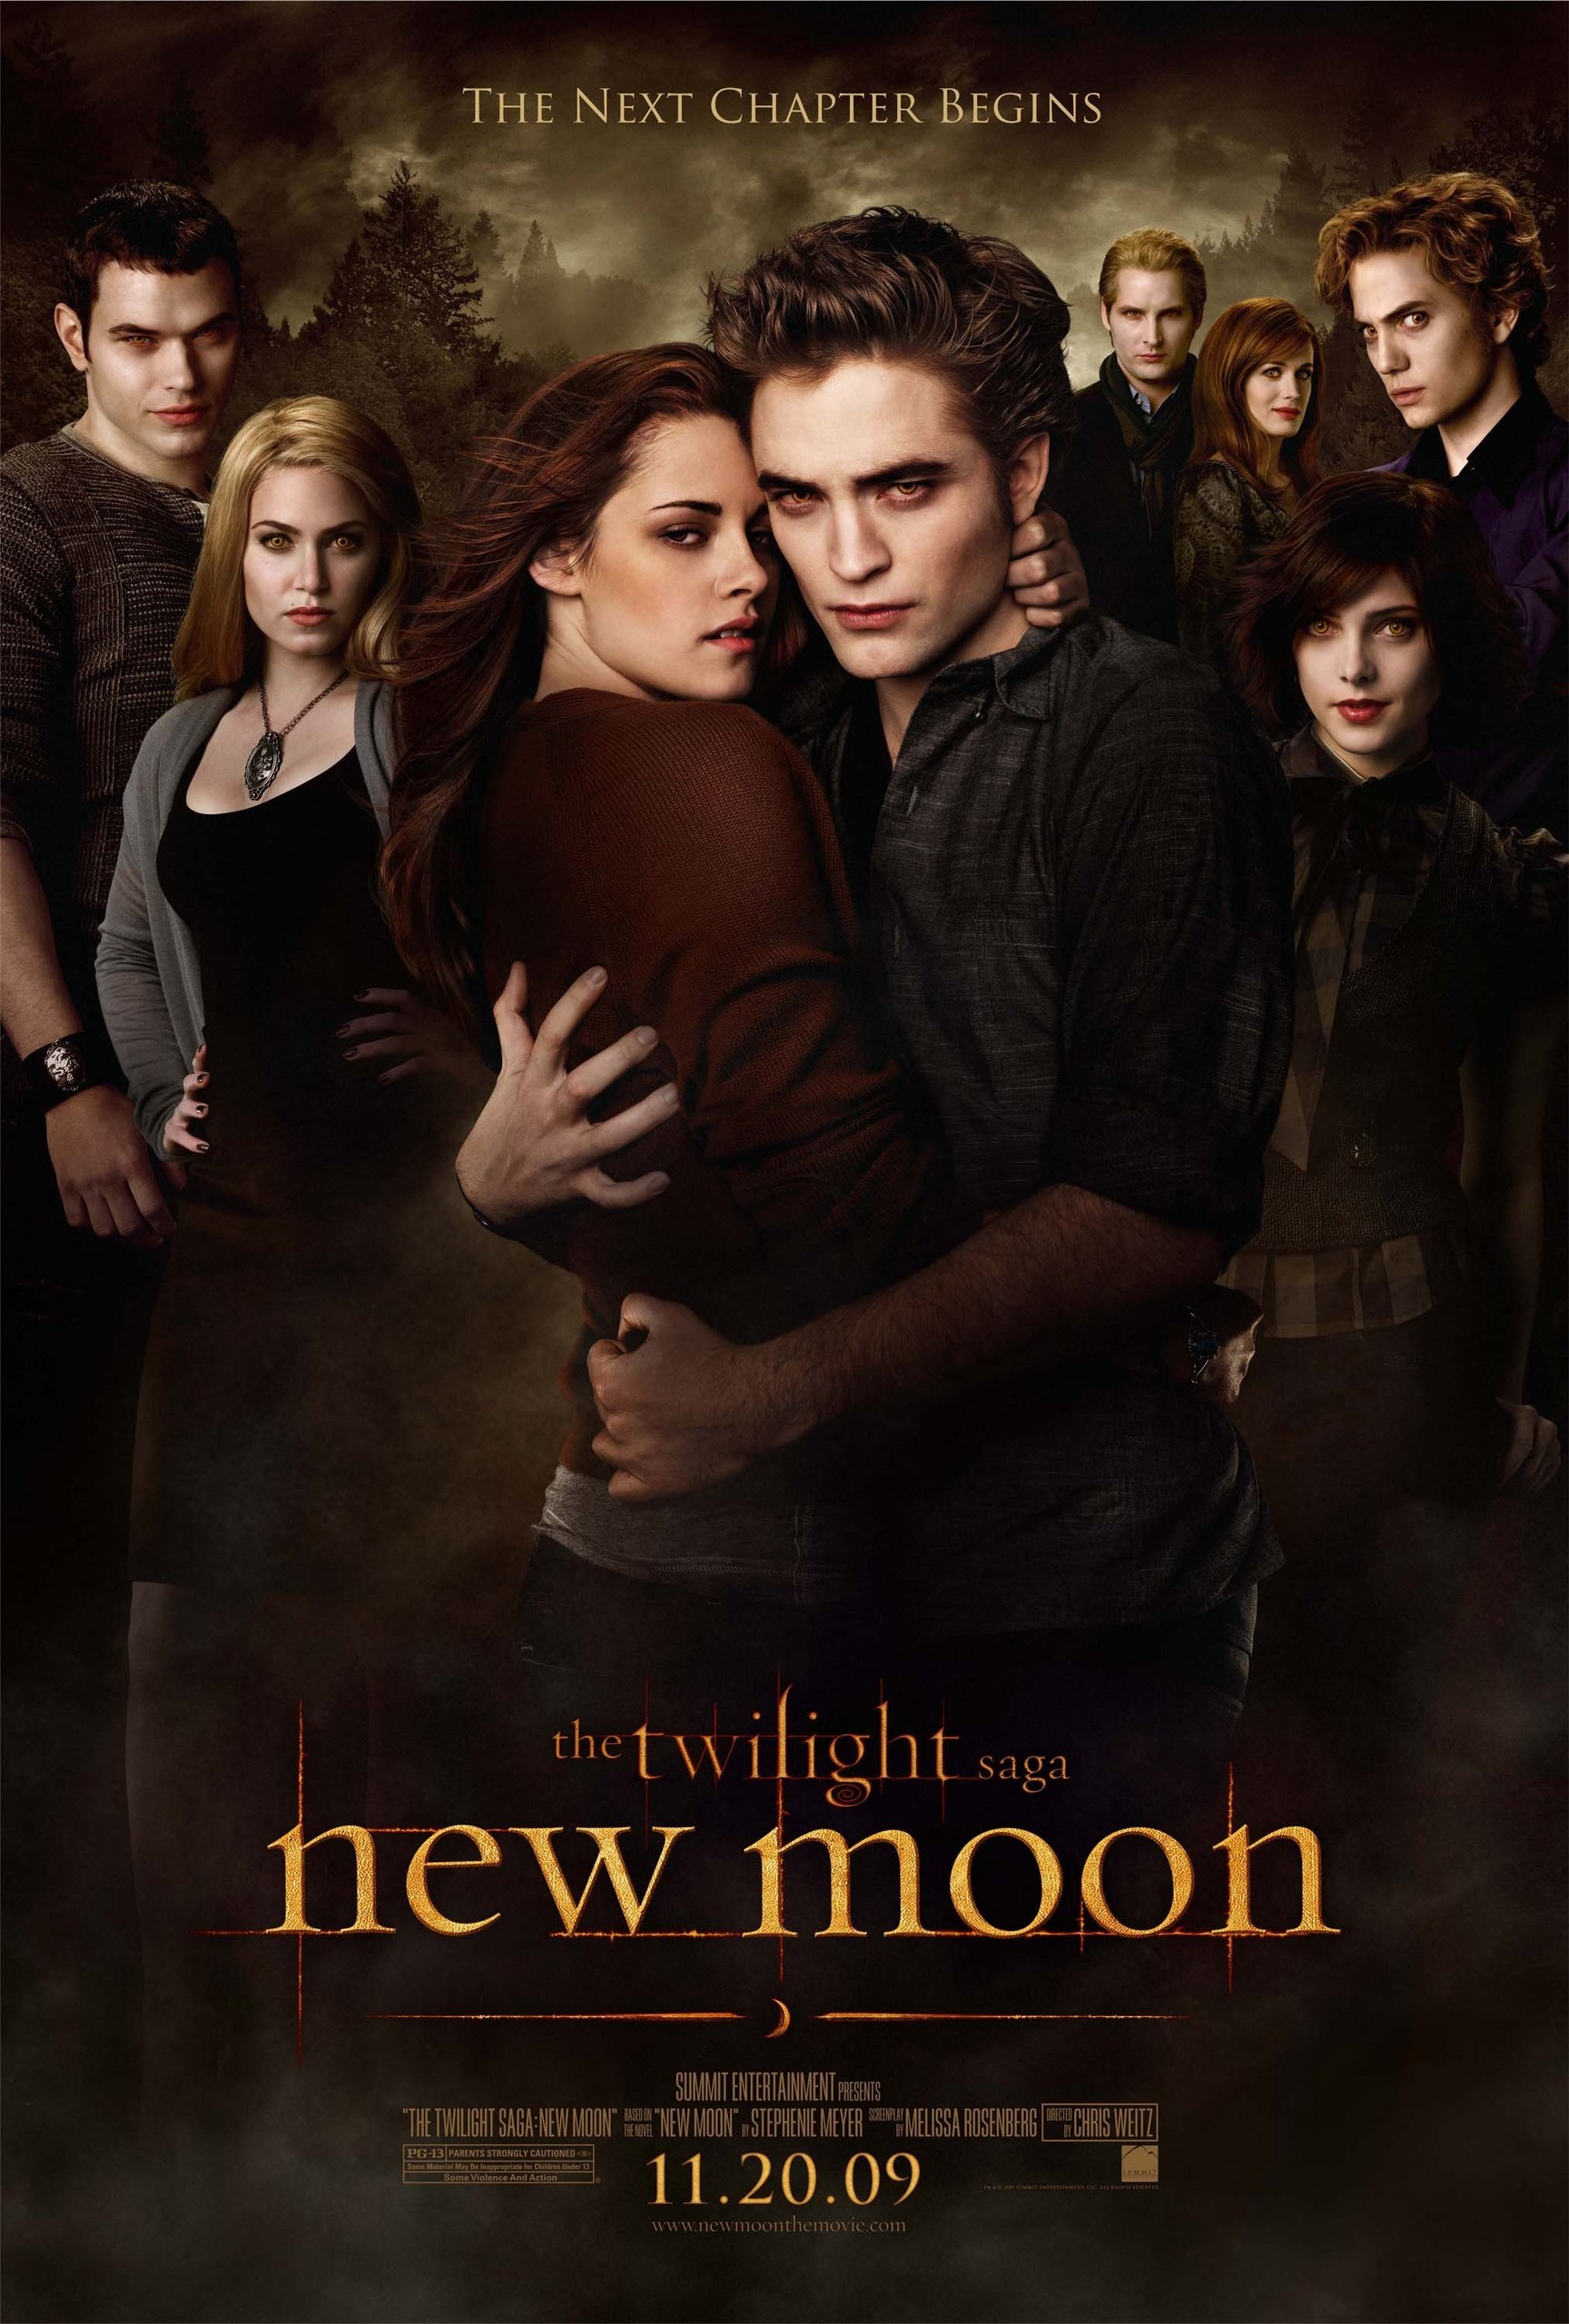 HQ Megasized New Moon Posters